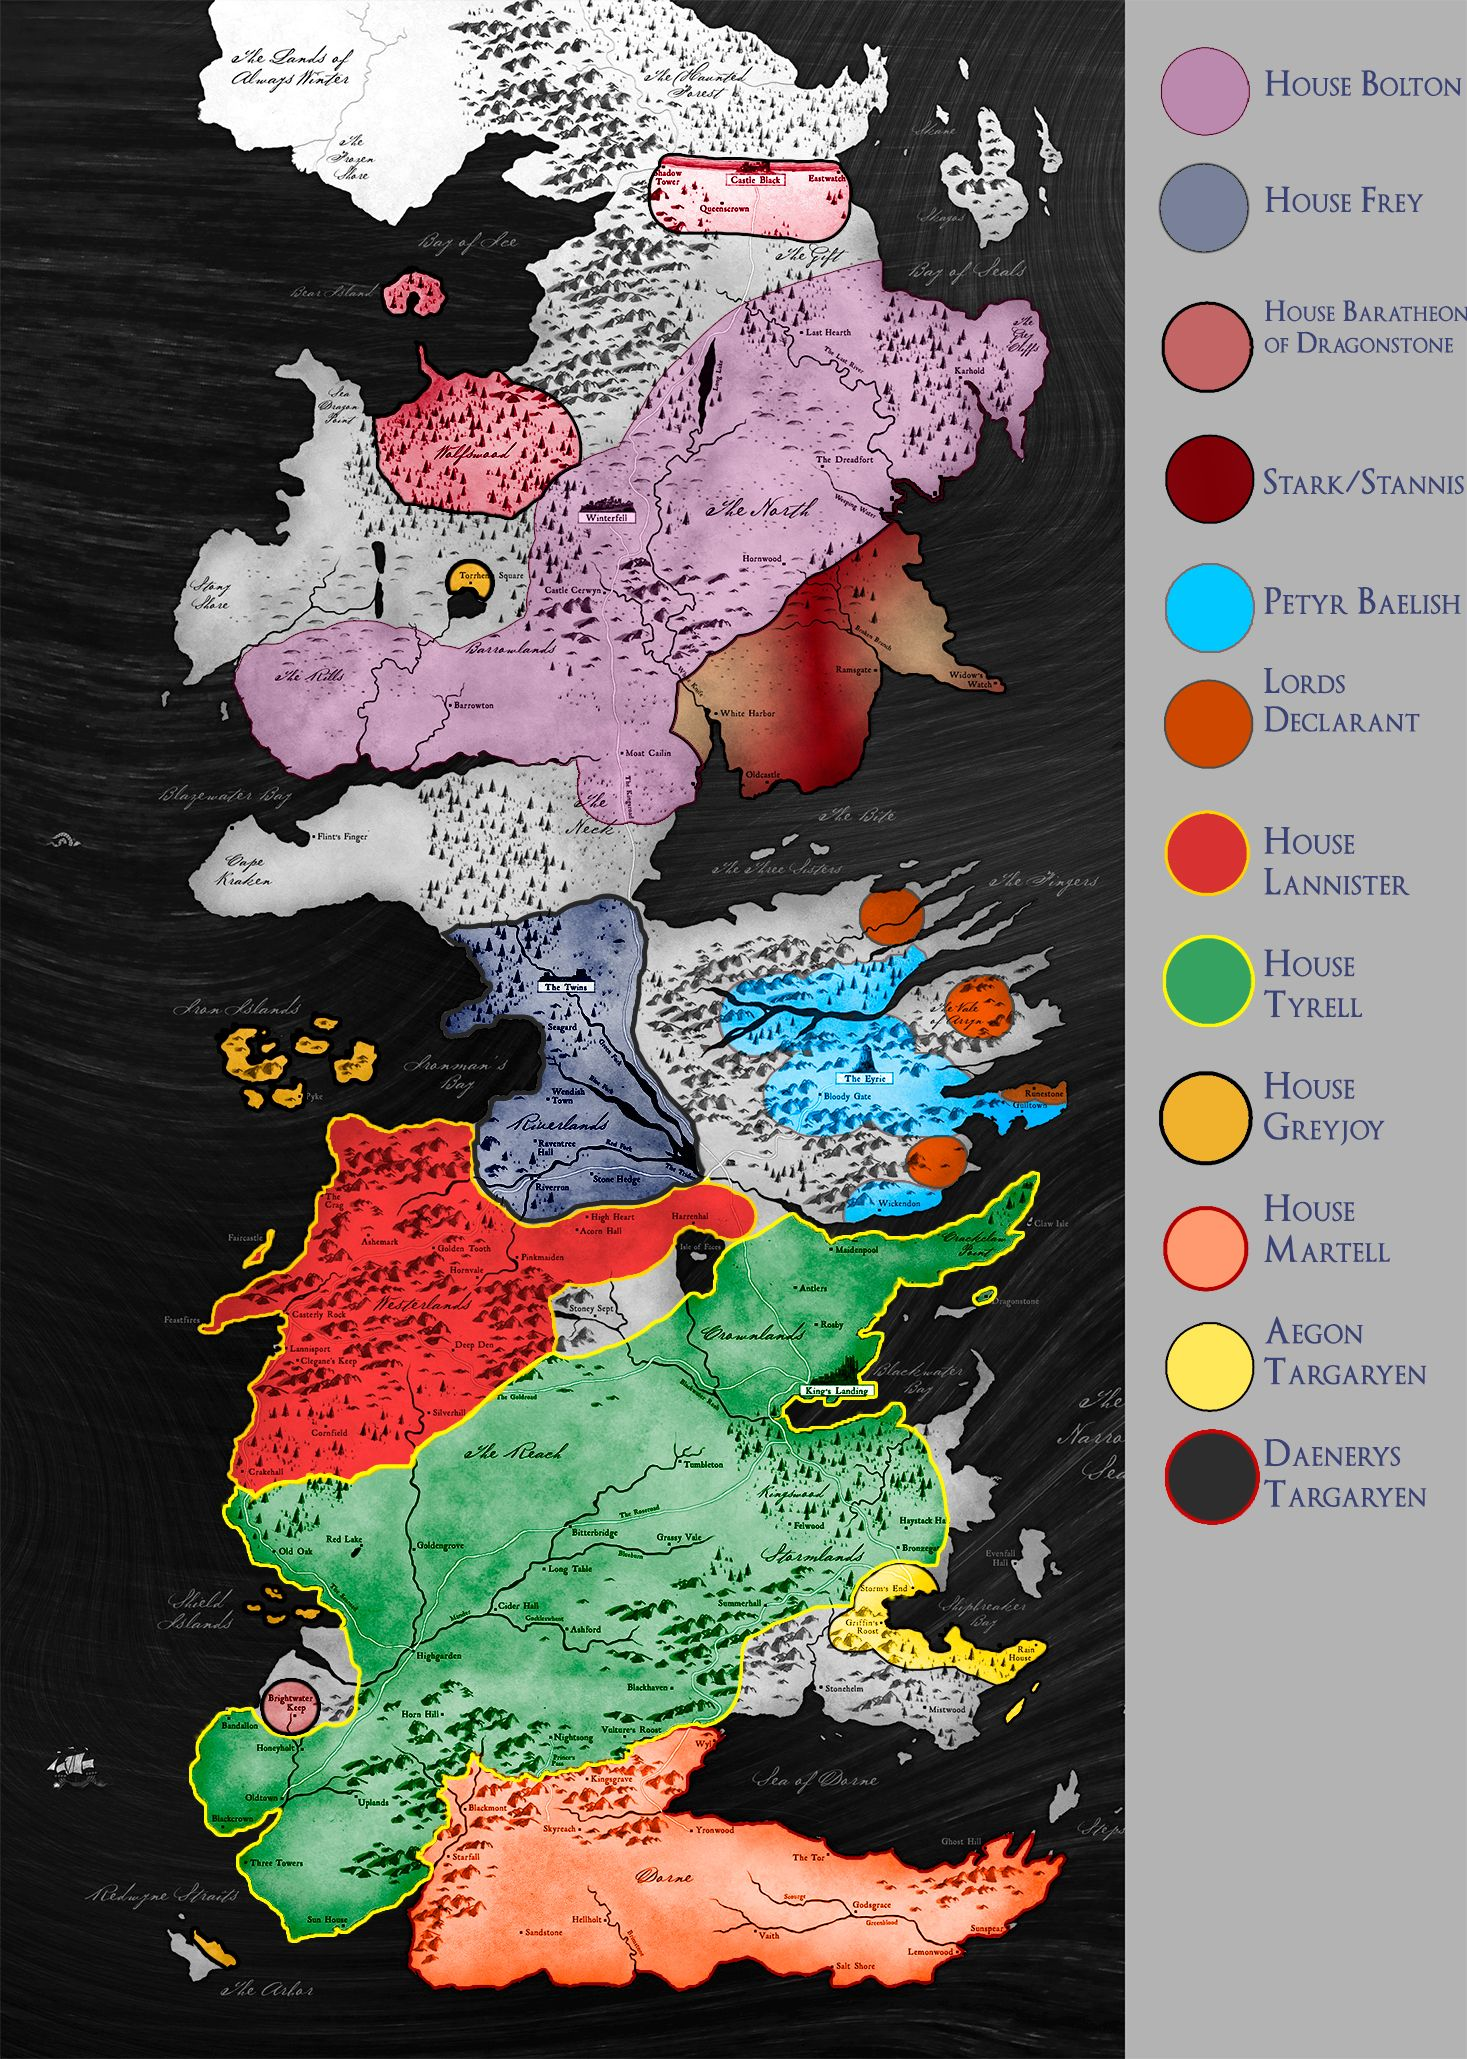 SPOILERS Latest map of Westeros GoT